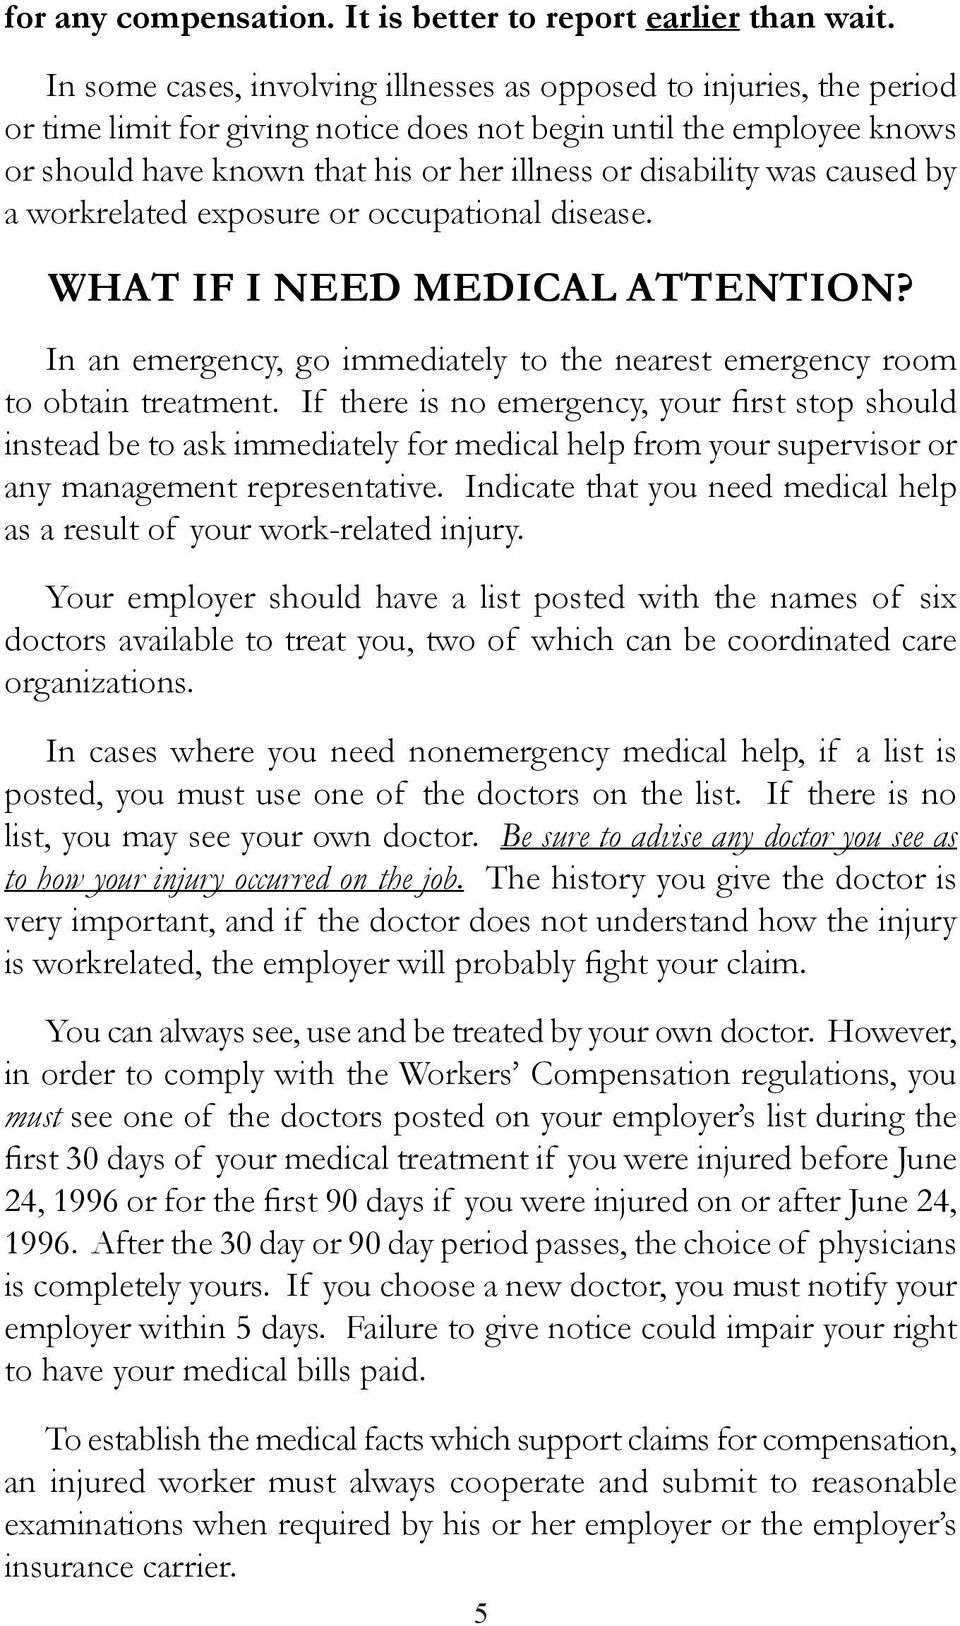 disability was caused by a workrelated exposure or occupational disease. WHAT IF I NEED MEDICAL ATTENTION? In an emergency, go immediately to the nearest emergency room to obtain treatment.